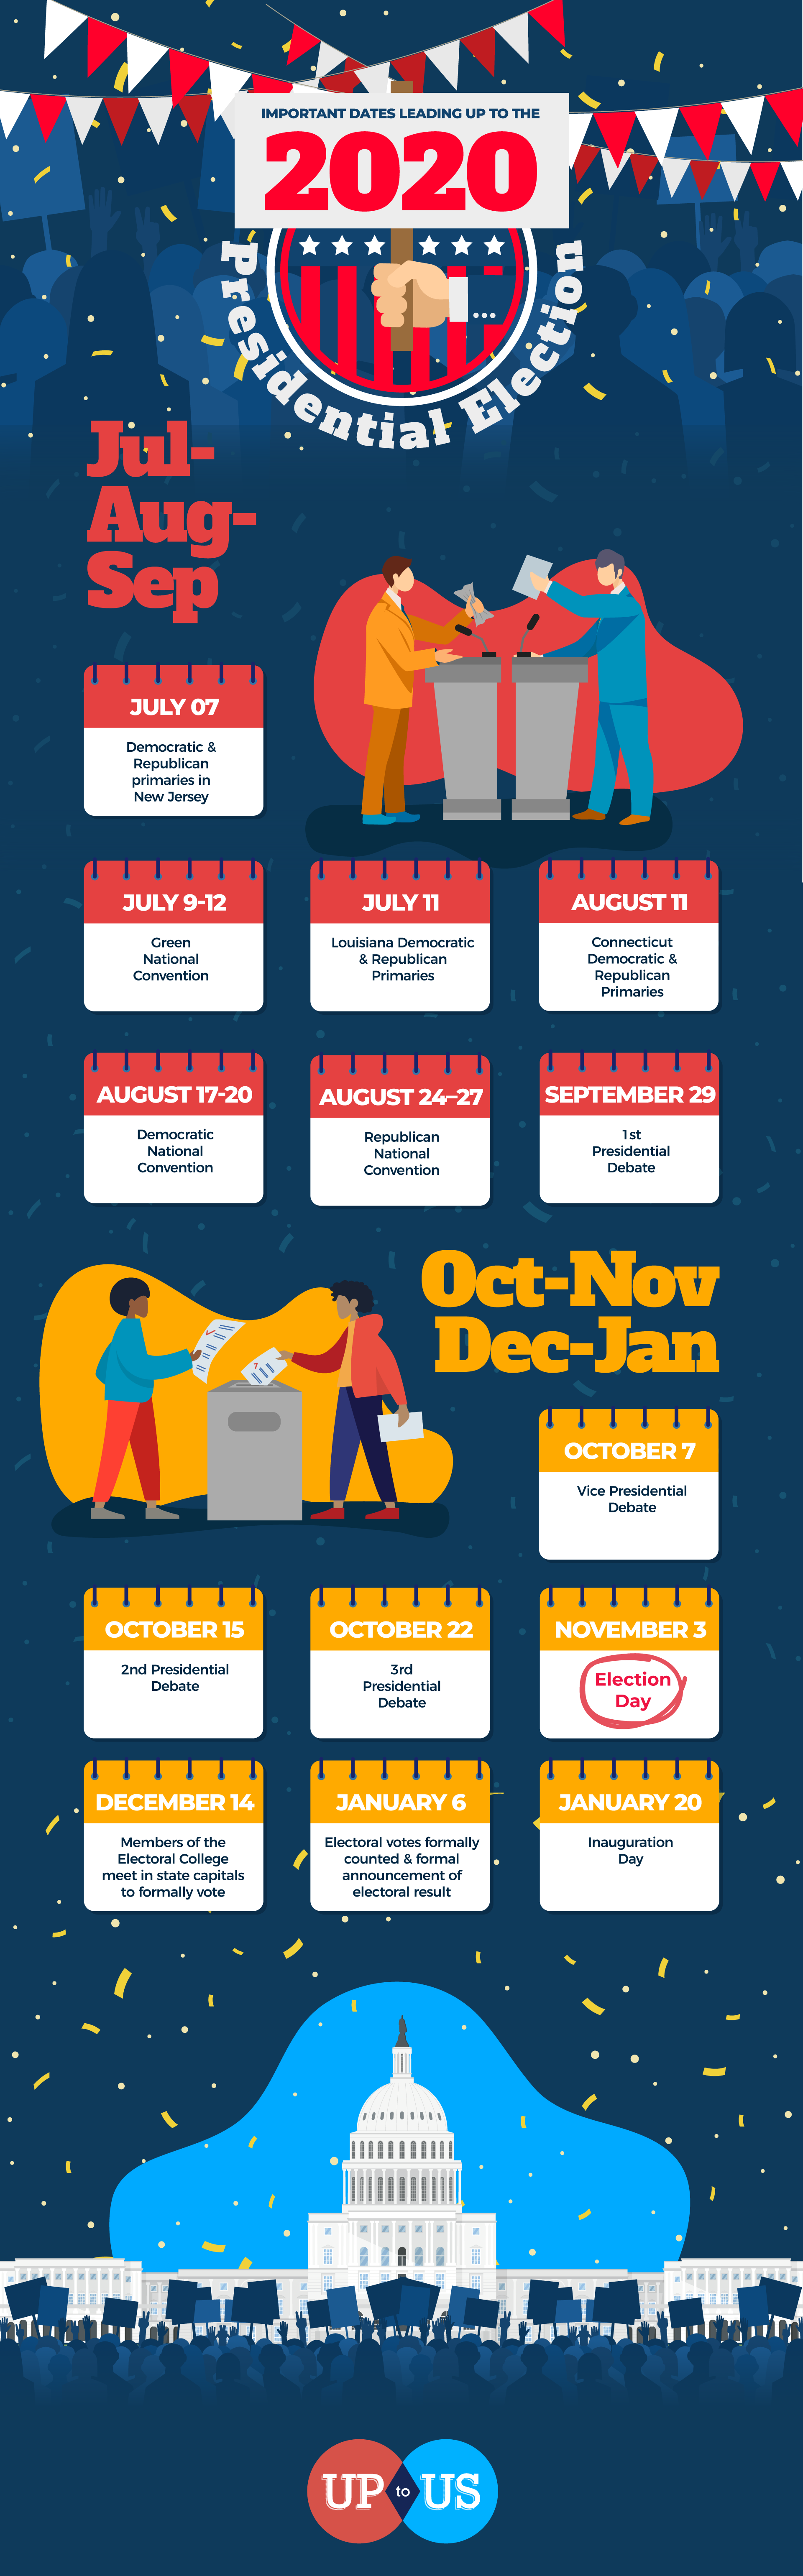 South Carolina 2022 Election Calendar.2020 U S Presidential Elections Candidates Dates More Laugust Update